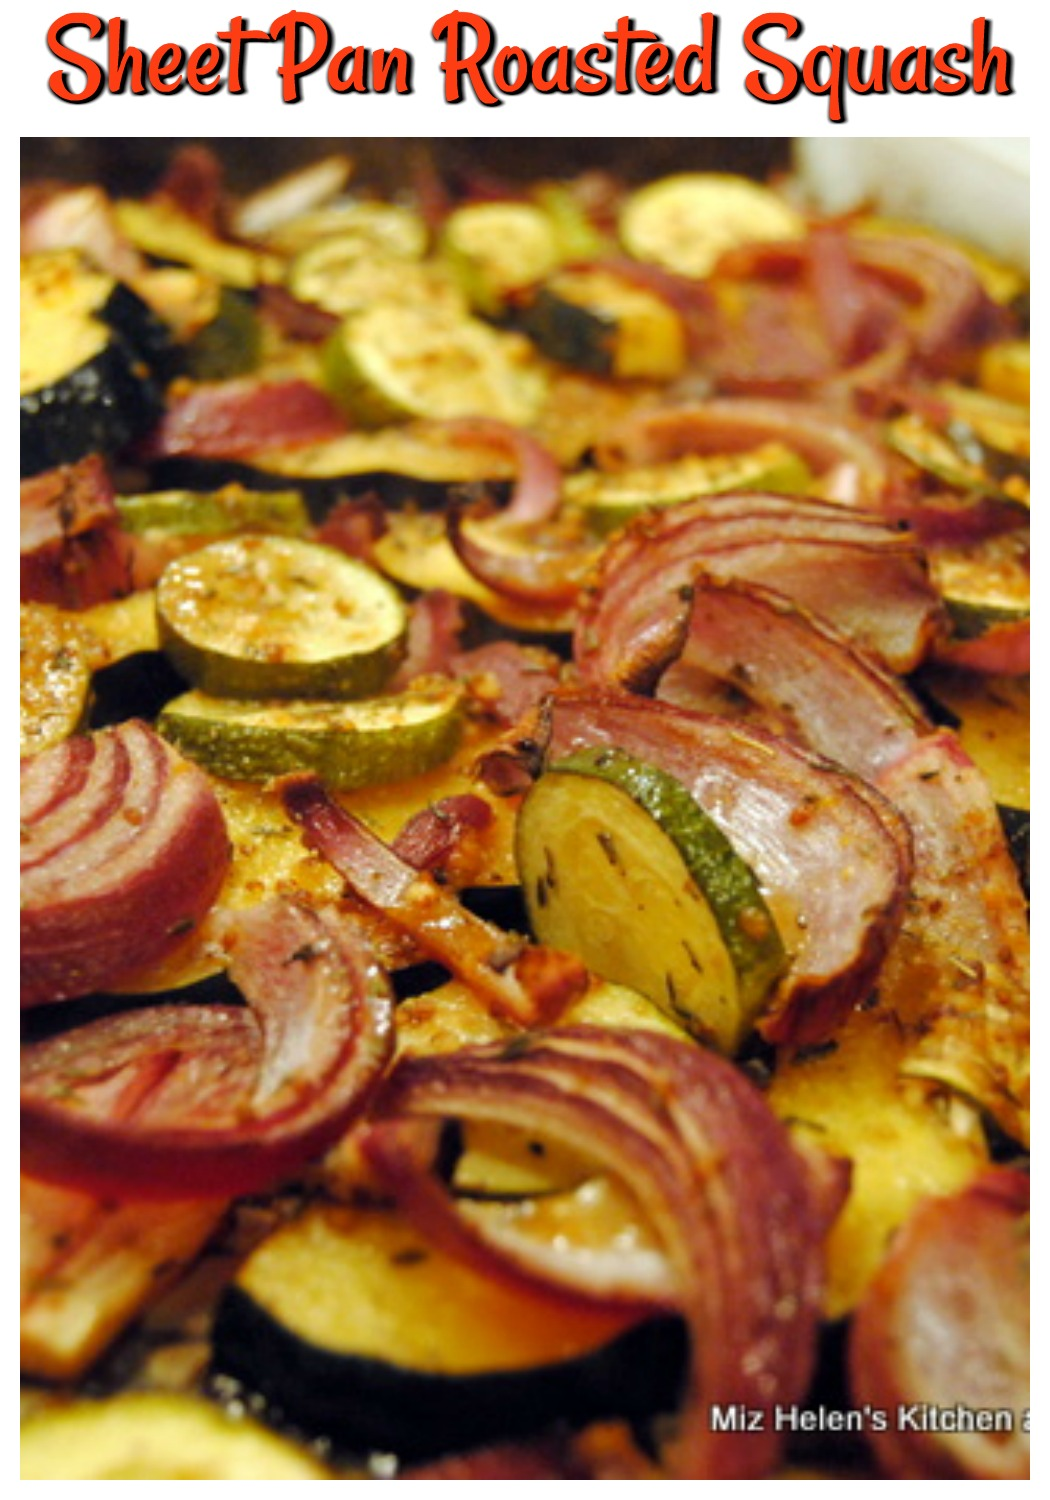 Sheet Pan Roasted Squash